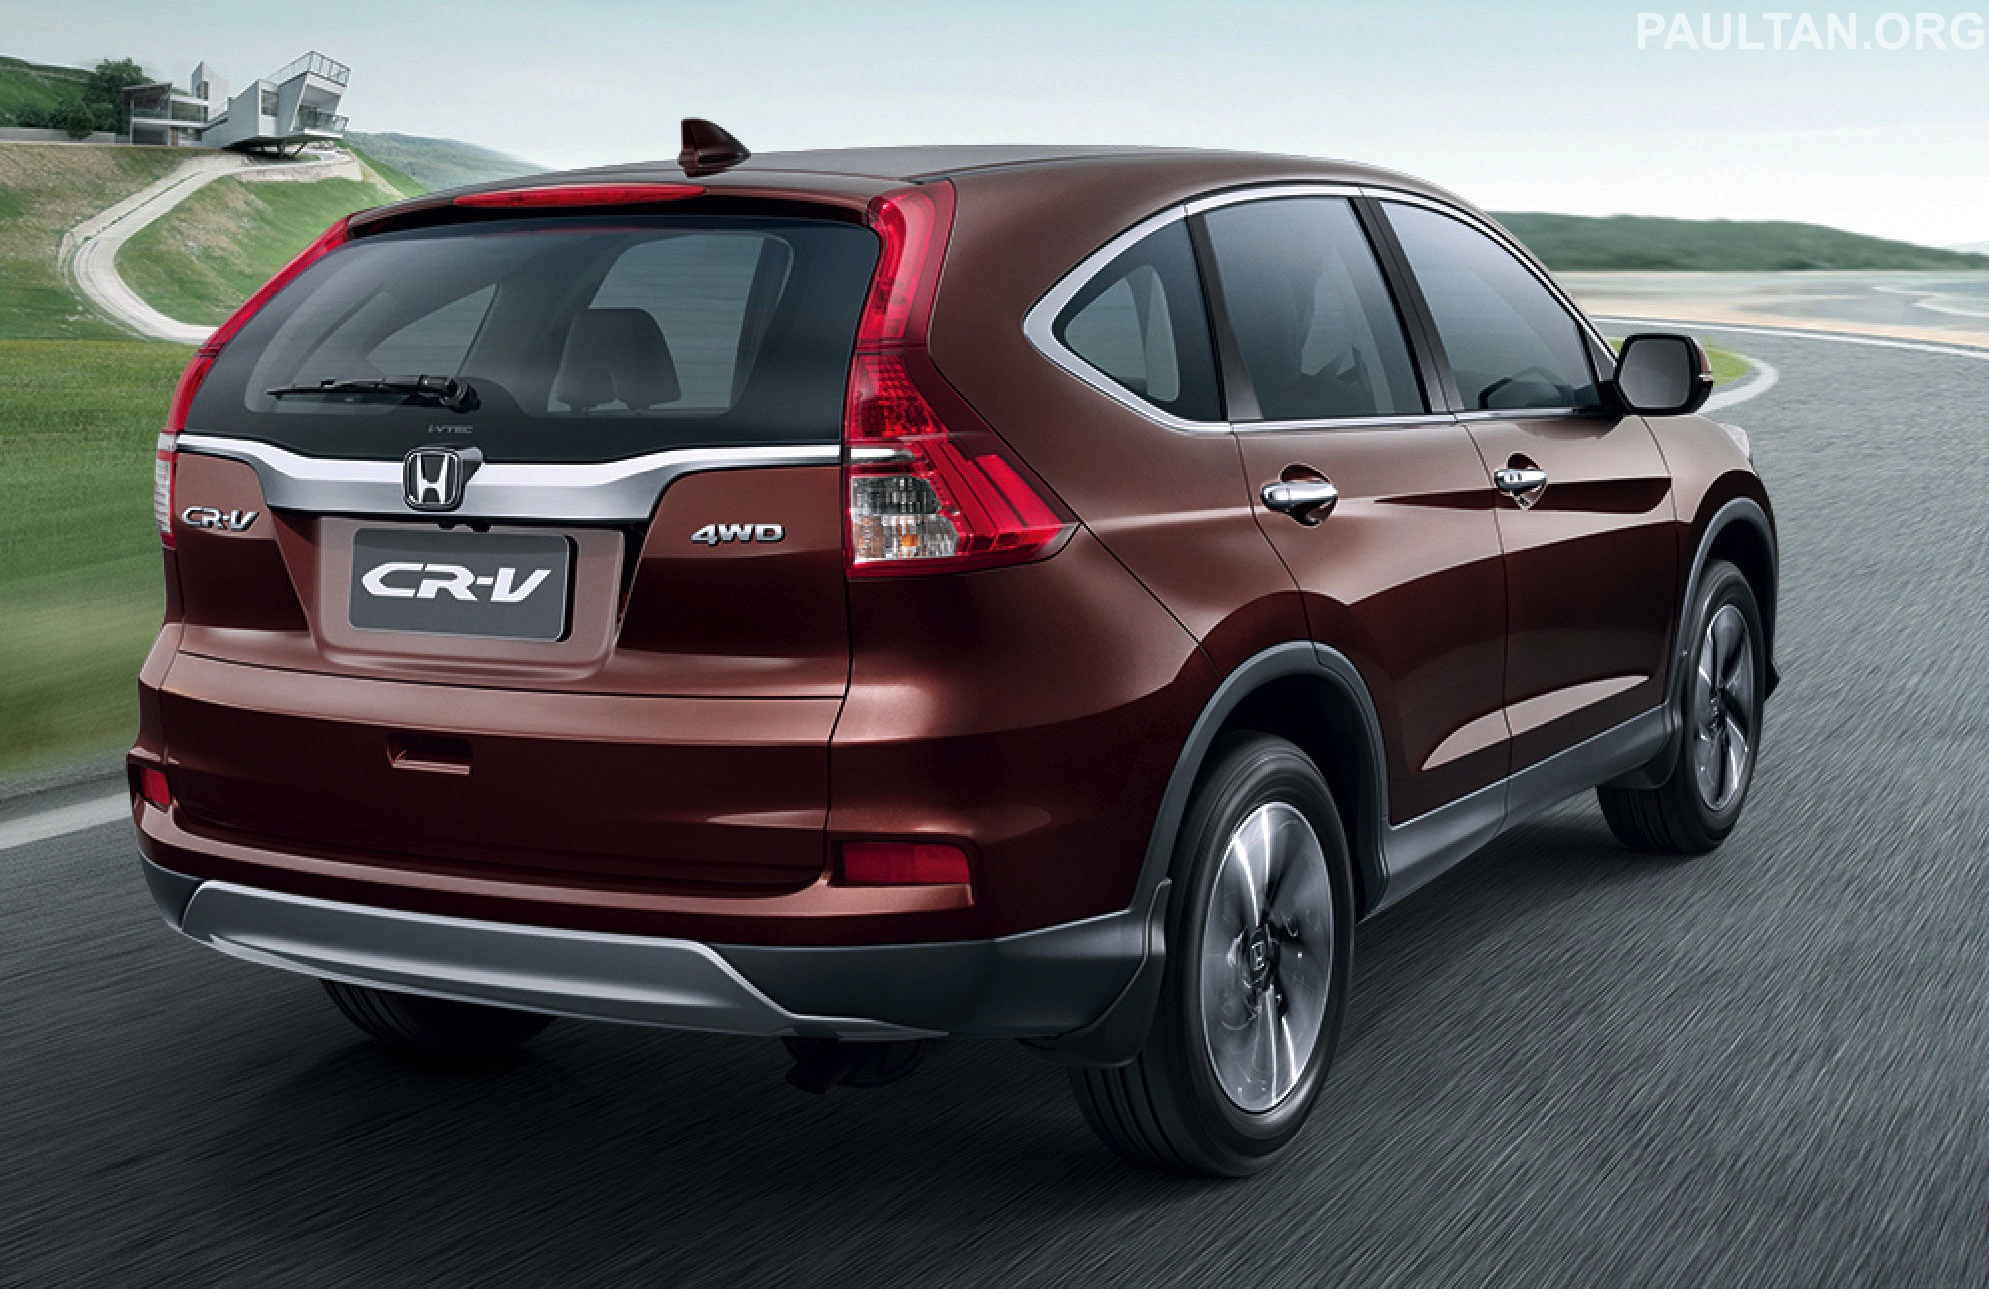 honda crv model year 2015